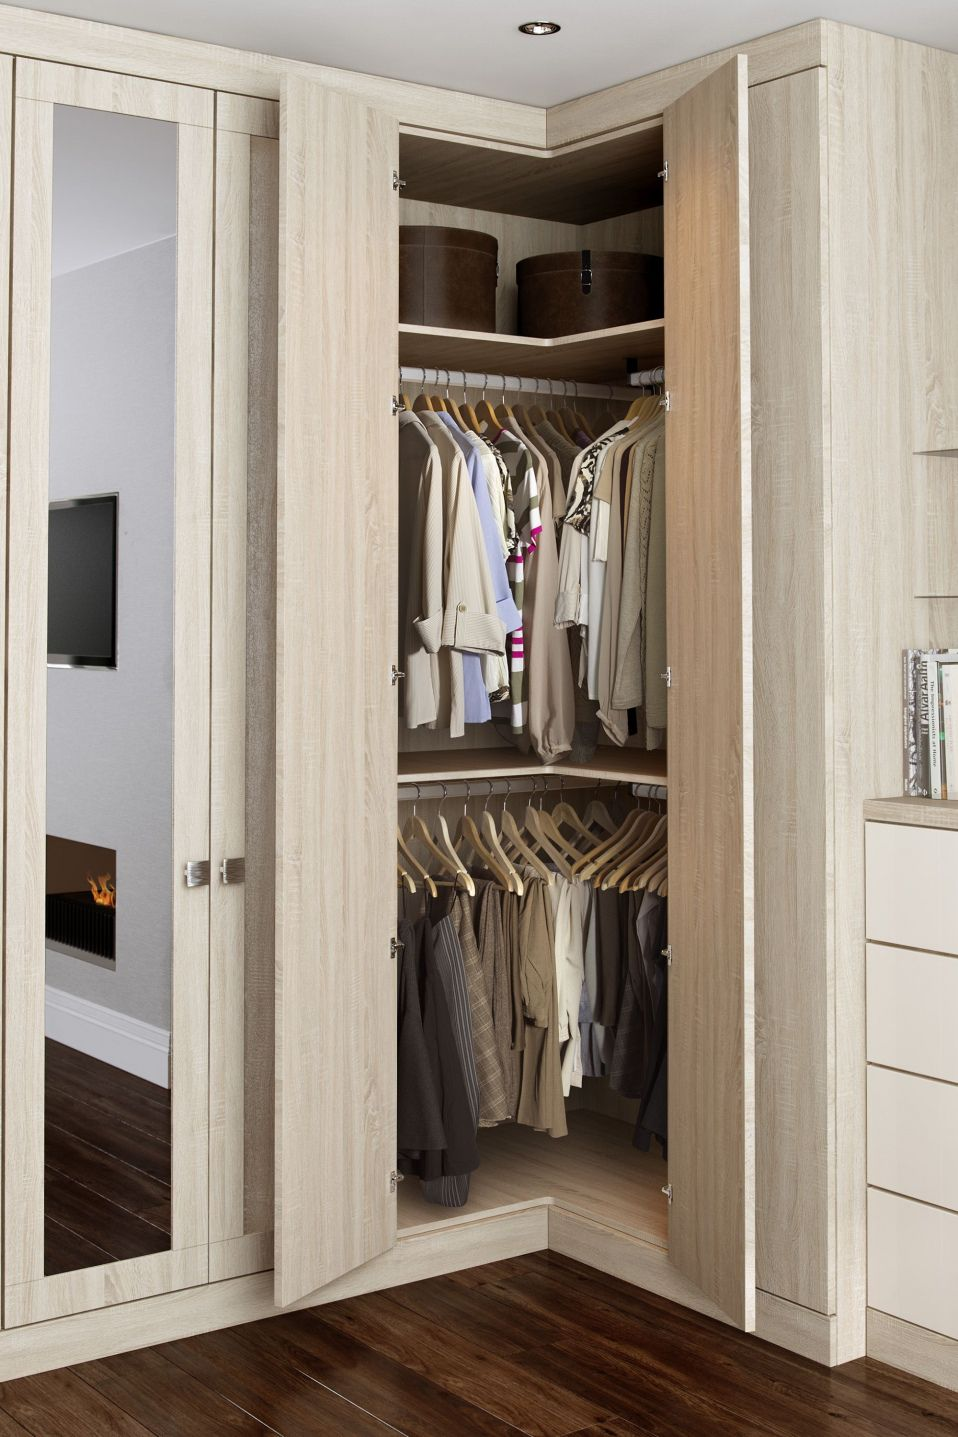 Pin By Malvika Gogte On Wardrobes In 2019 Bedroom Closet